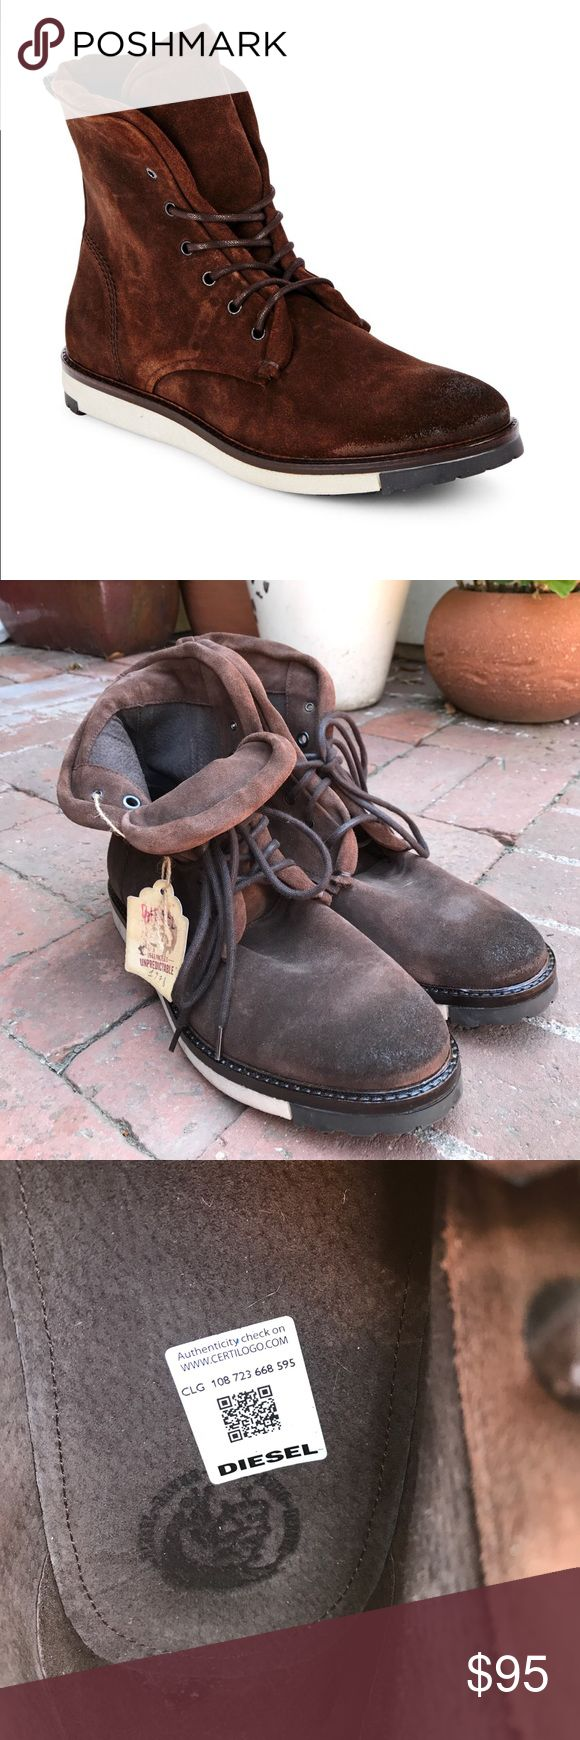 Men's Diesel boots NWT soft dark brown suede boots, perfect condition Diesel Shoes Chukka Boots